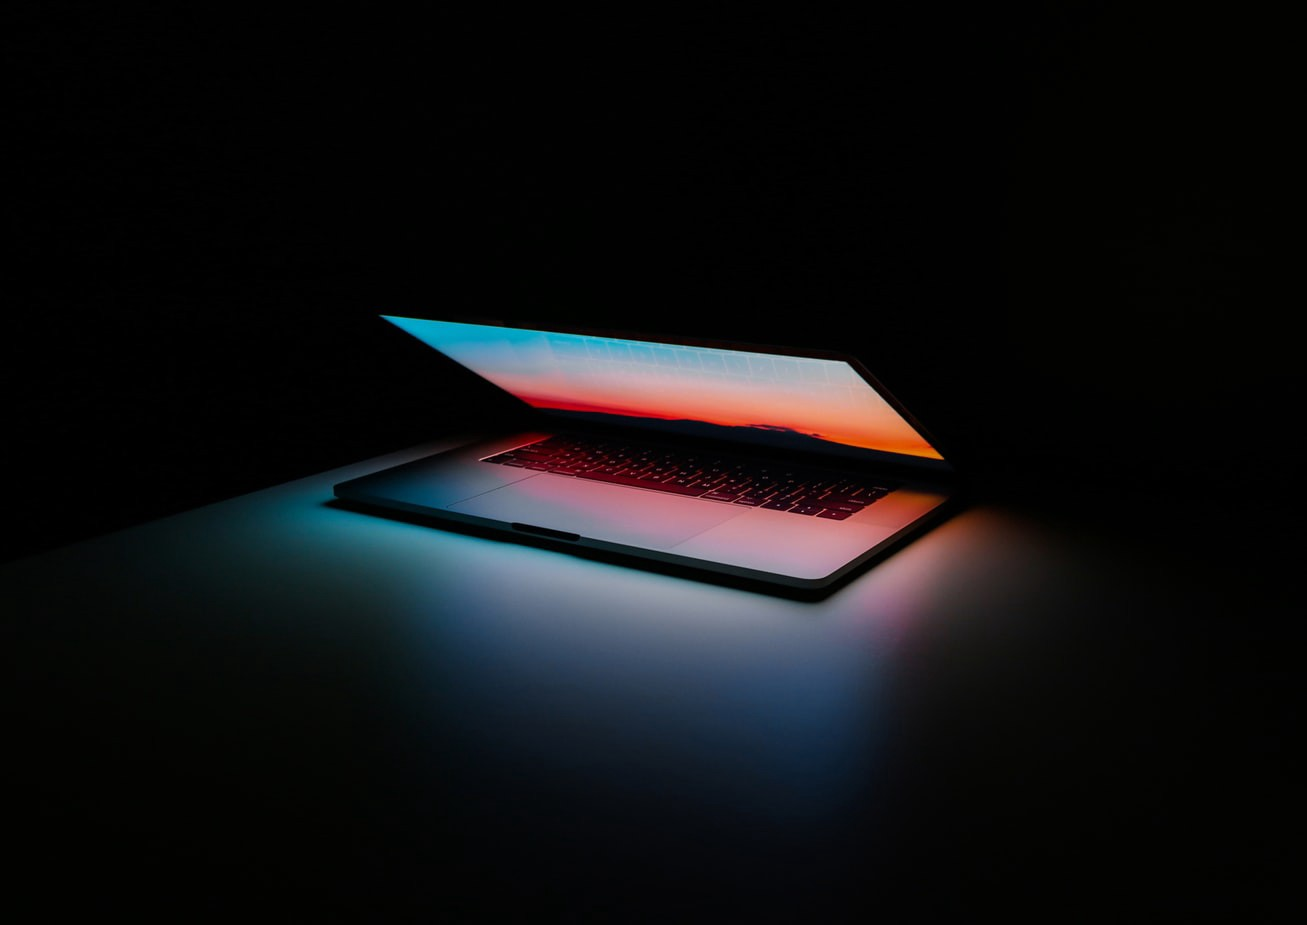 A closing laptop lid with ominous lighting.